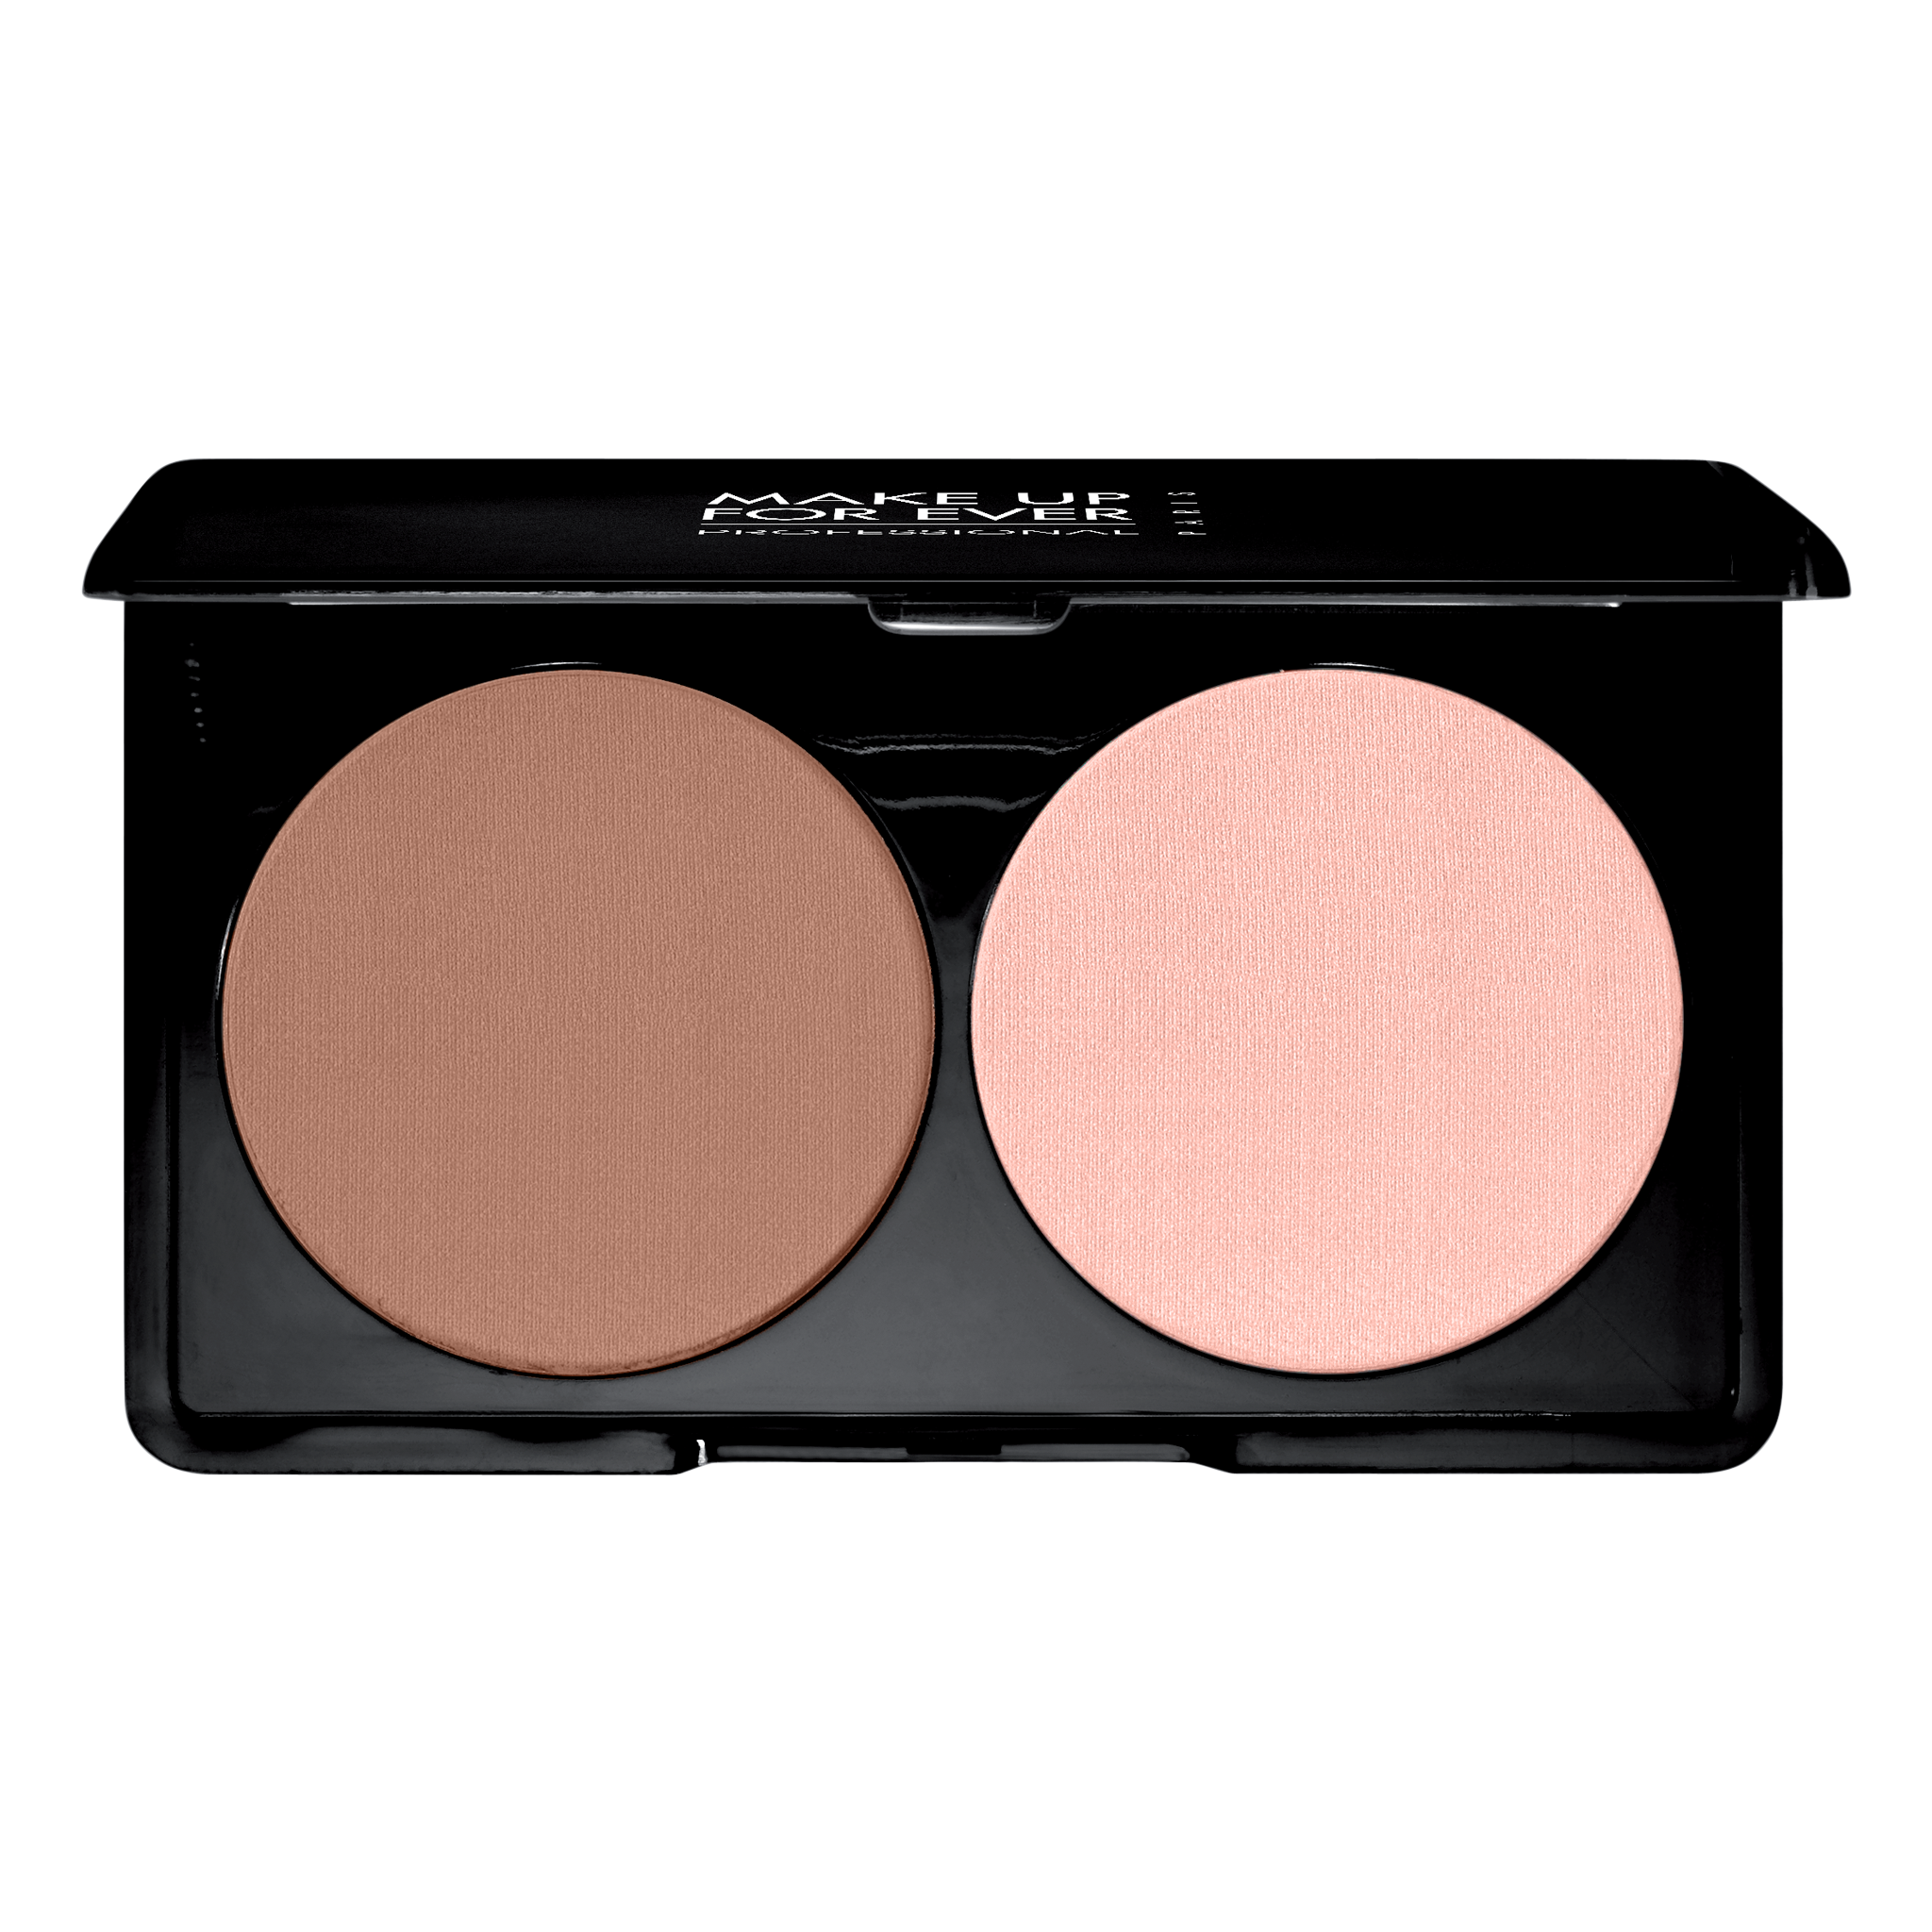 The Sculpting Kit is a set of two compact powders suited to reshape and alter the size of the face using a light and shadow contrast.